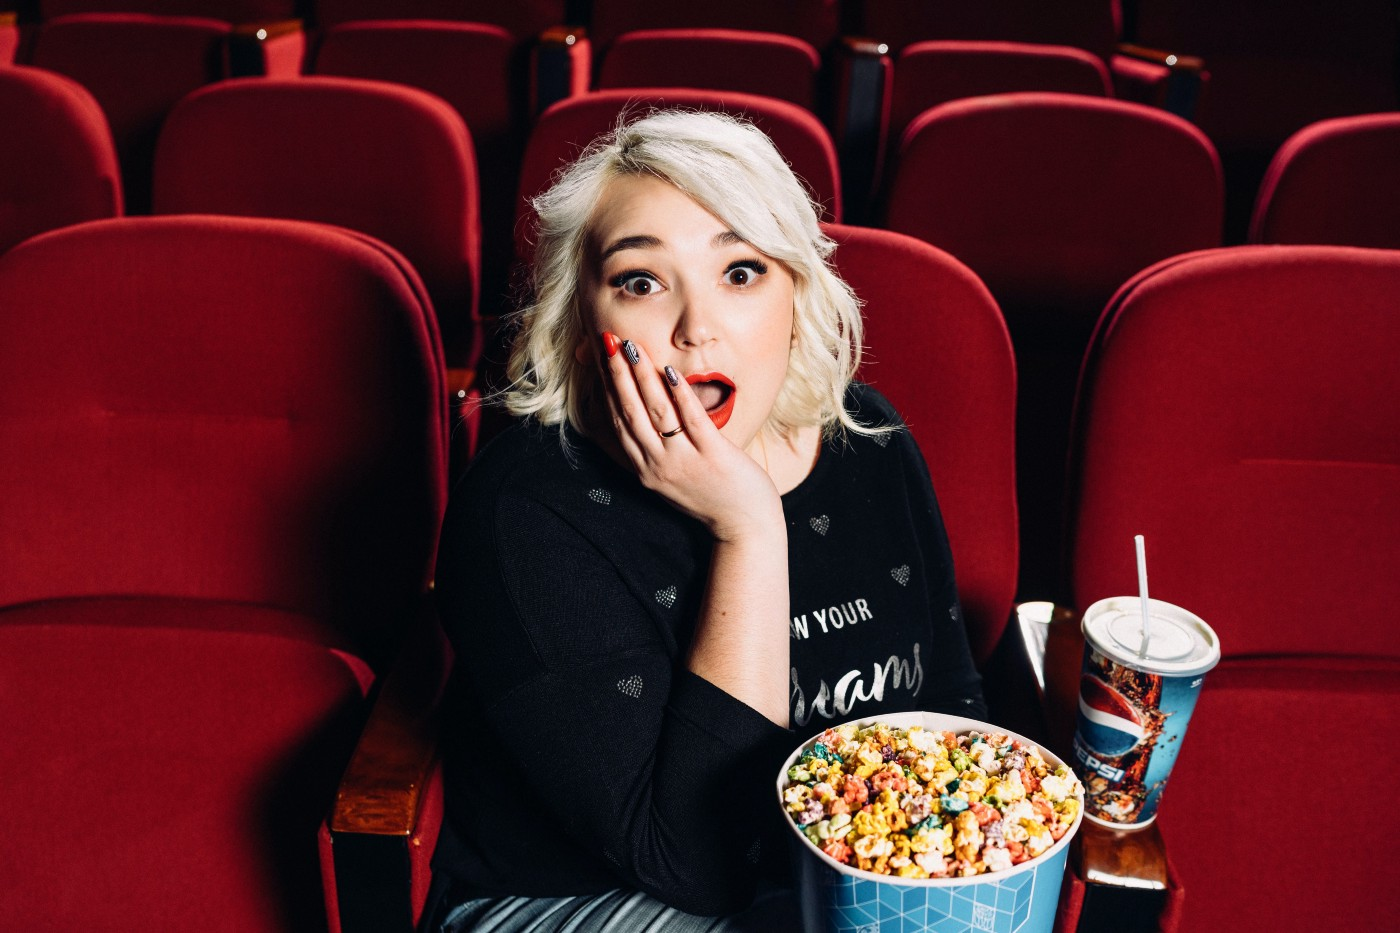 A blond woman in a red upholstered theater seat holds her hand to her mouth in astonishment while holding a bucket of popcorn and a soft drink.